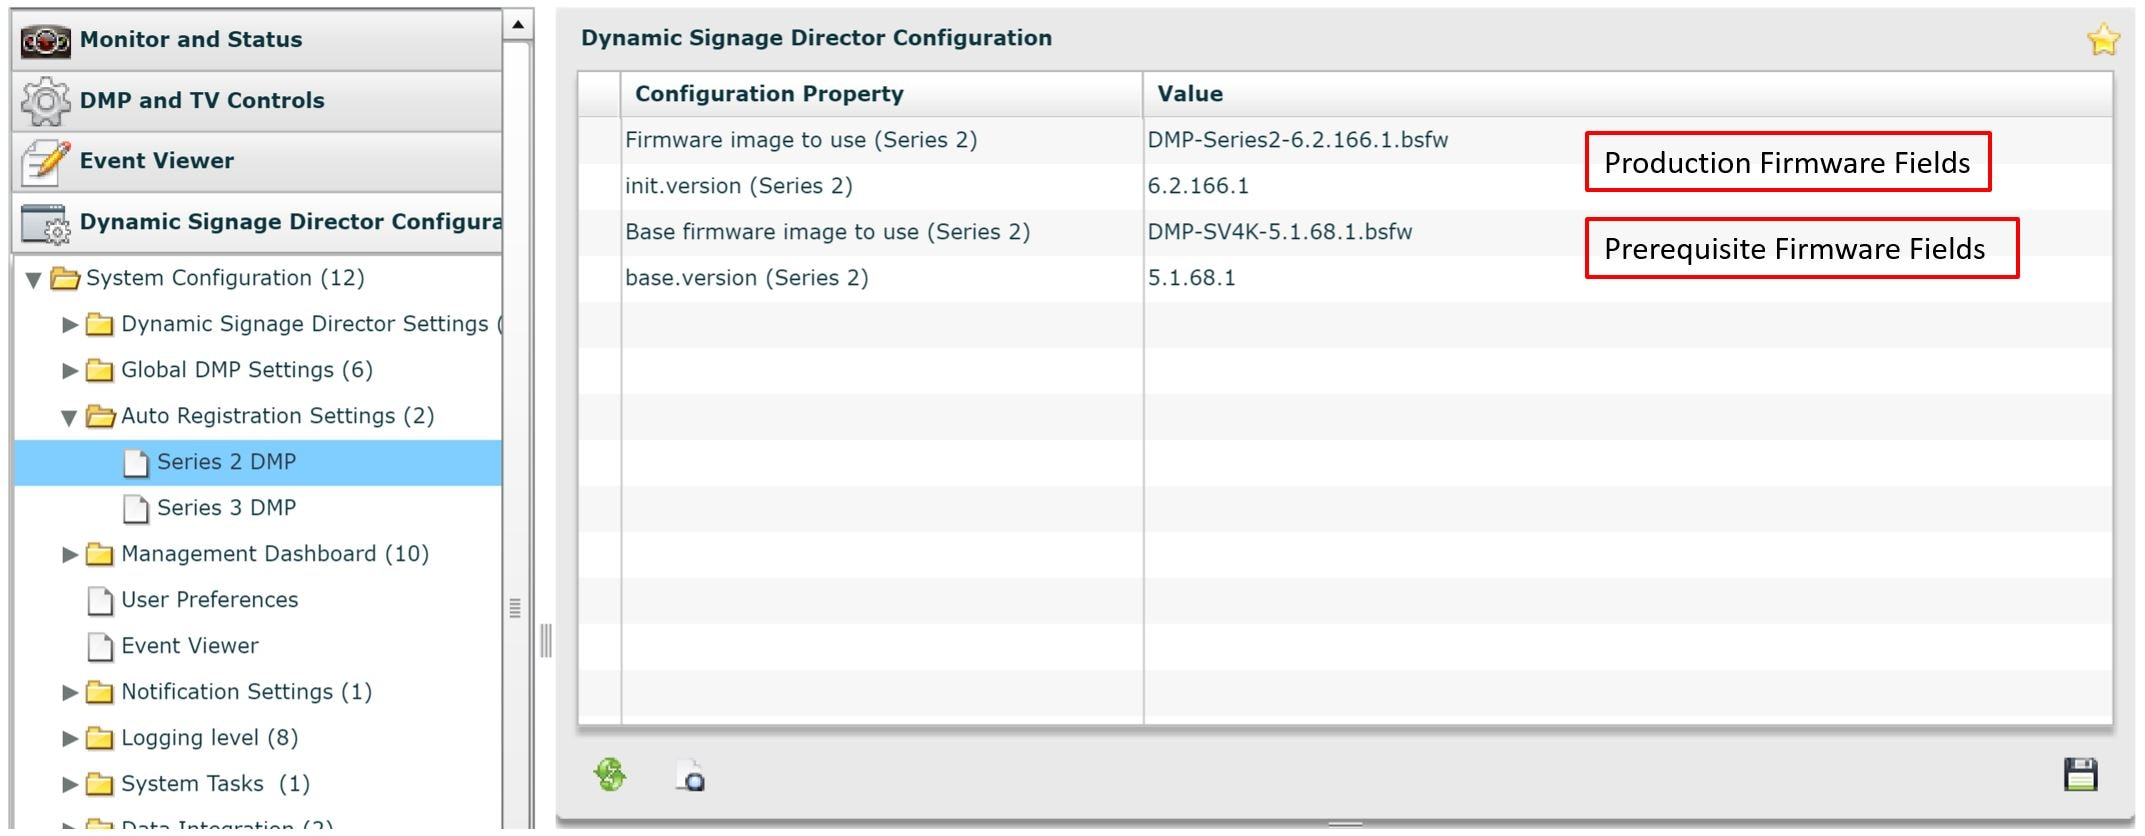 Cisco Vision Dynamic Signage Director Release Notes for